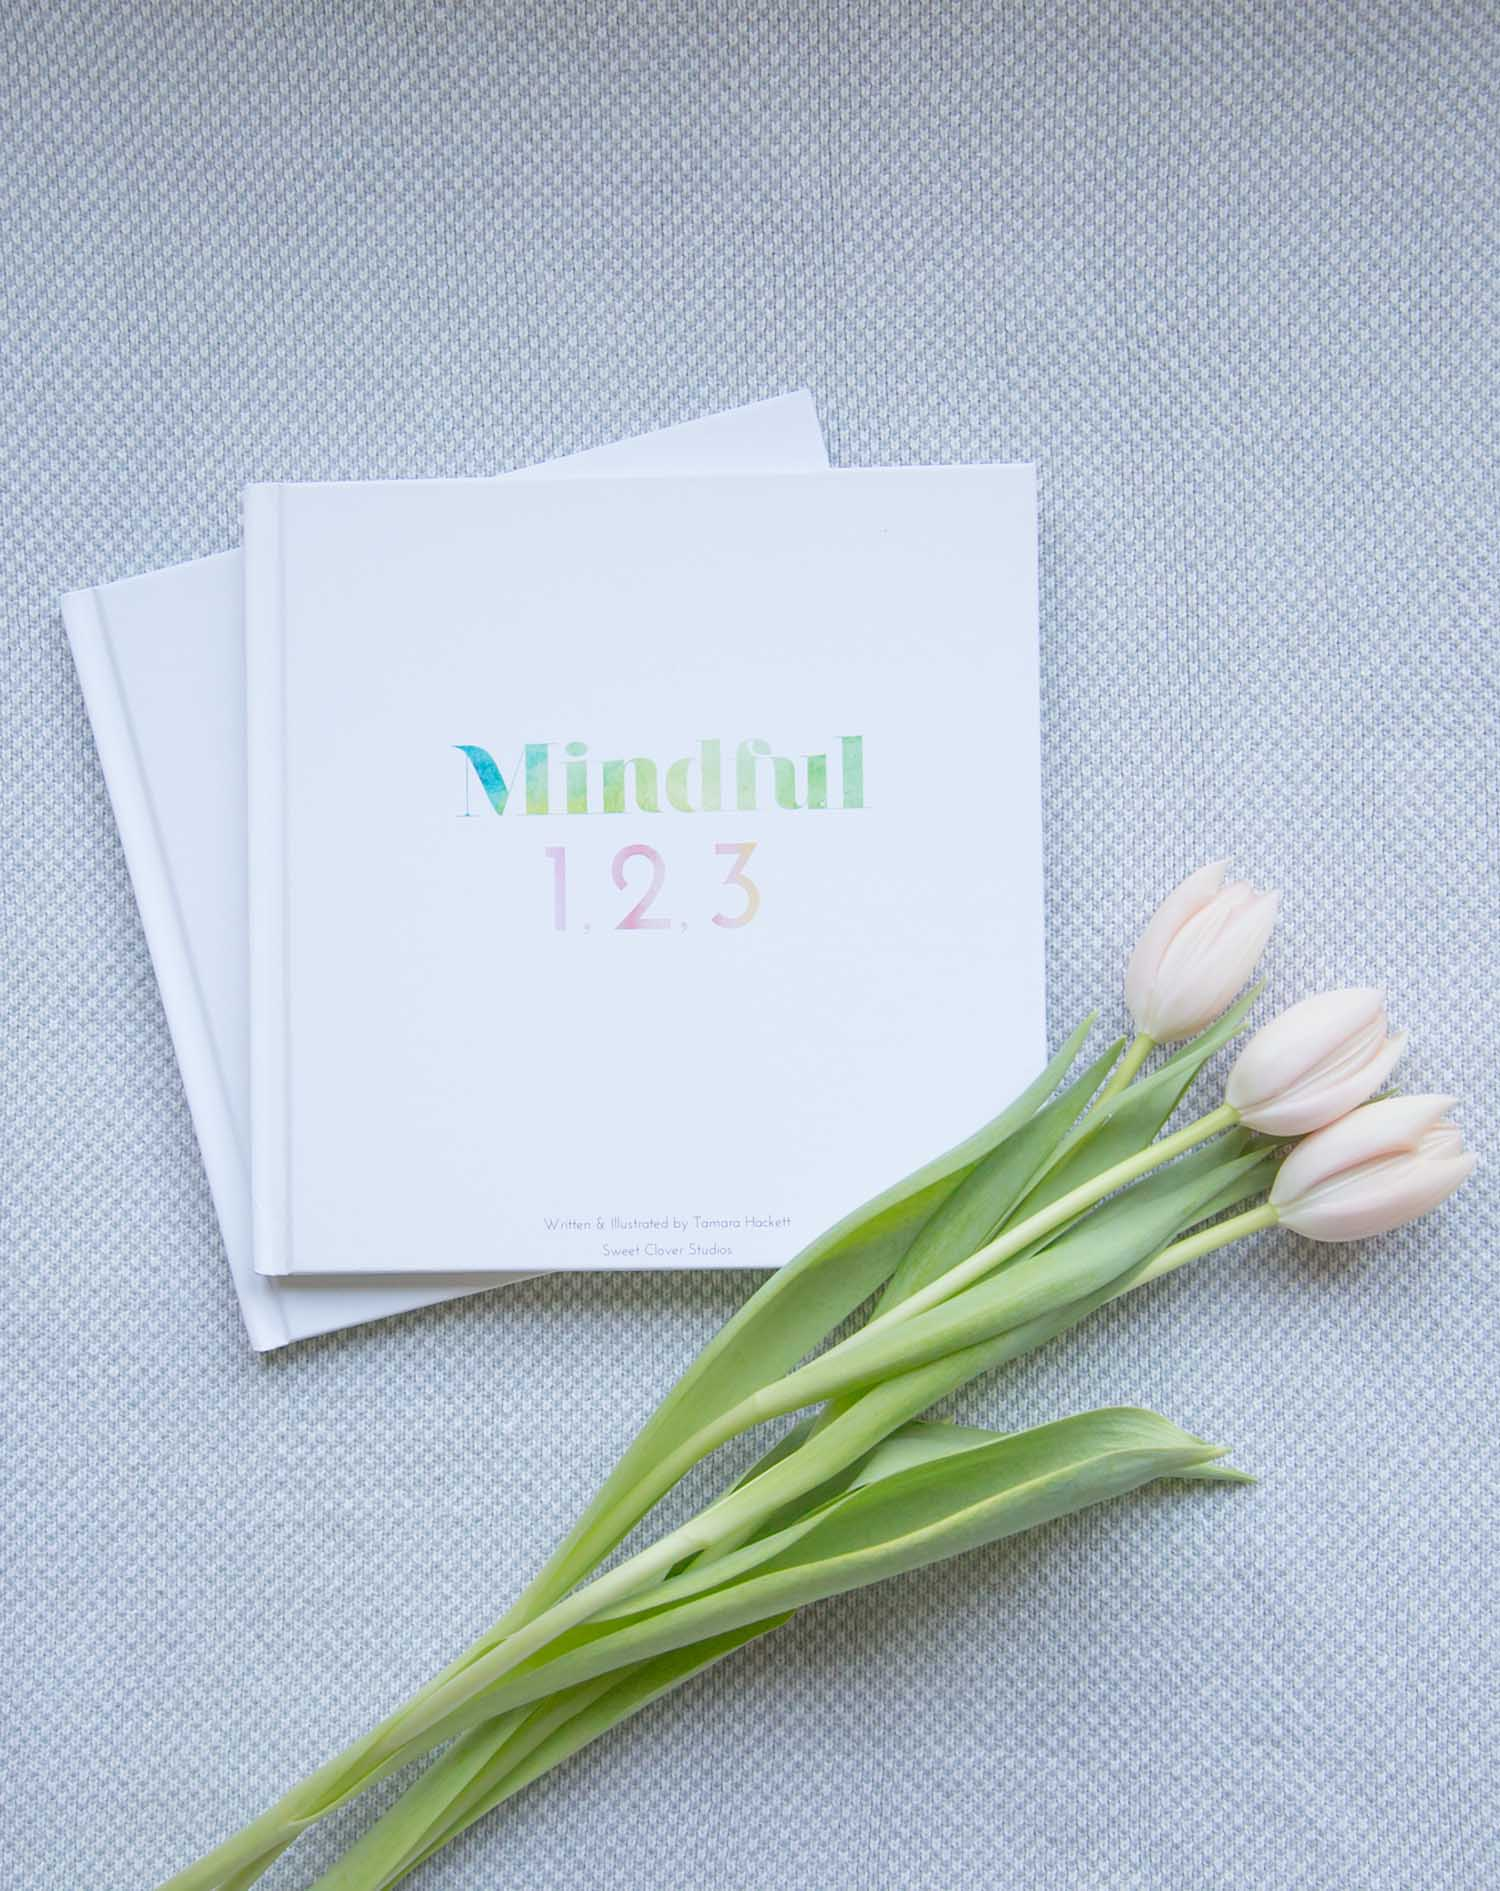 Mindful 1,2,3 book cover with tulips